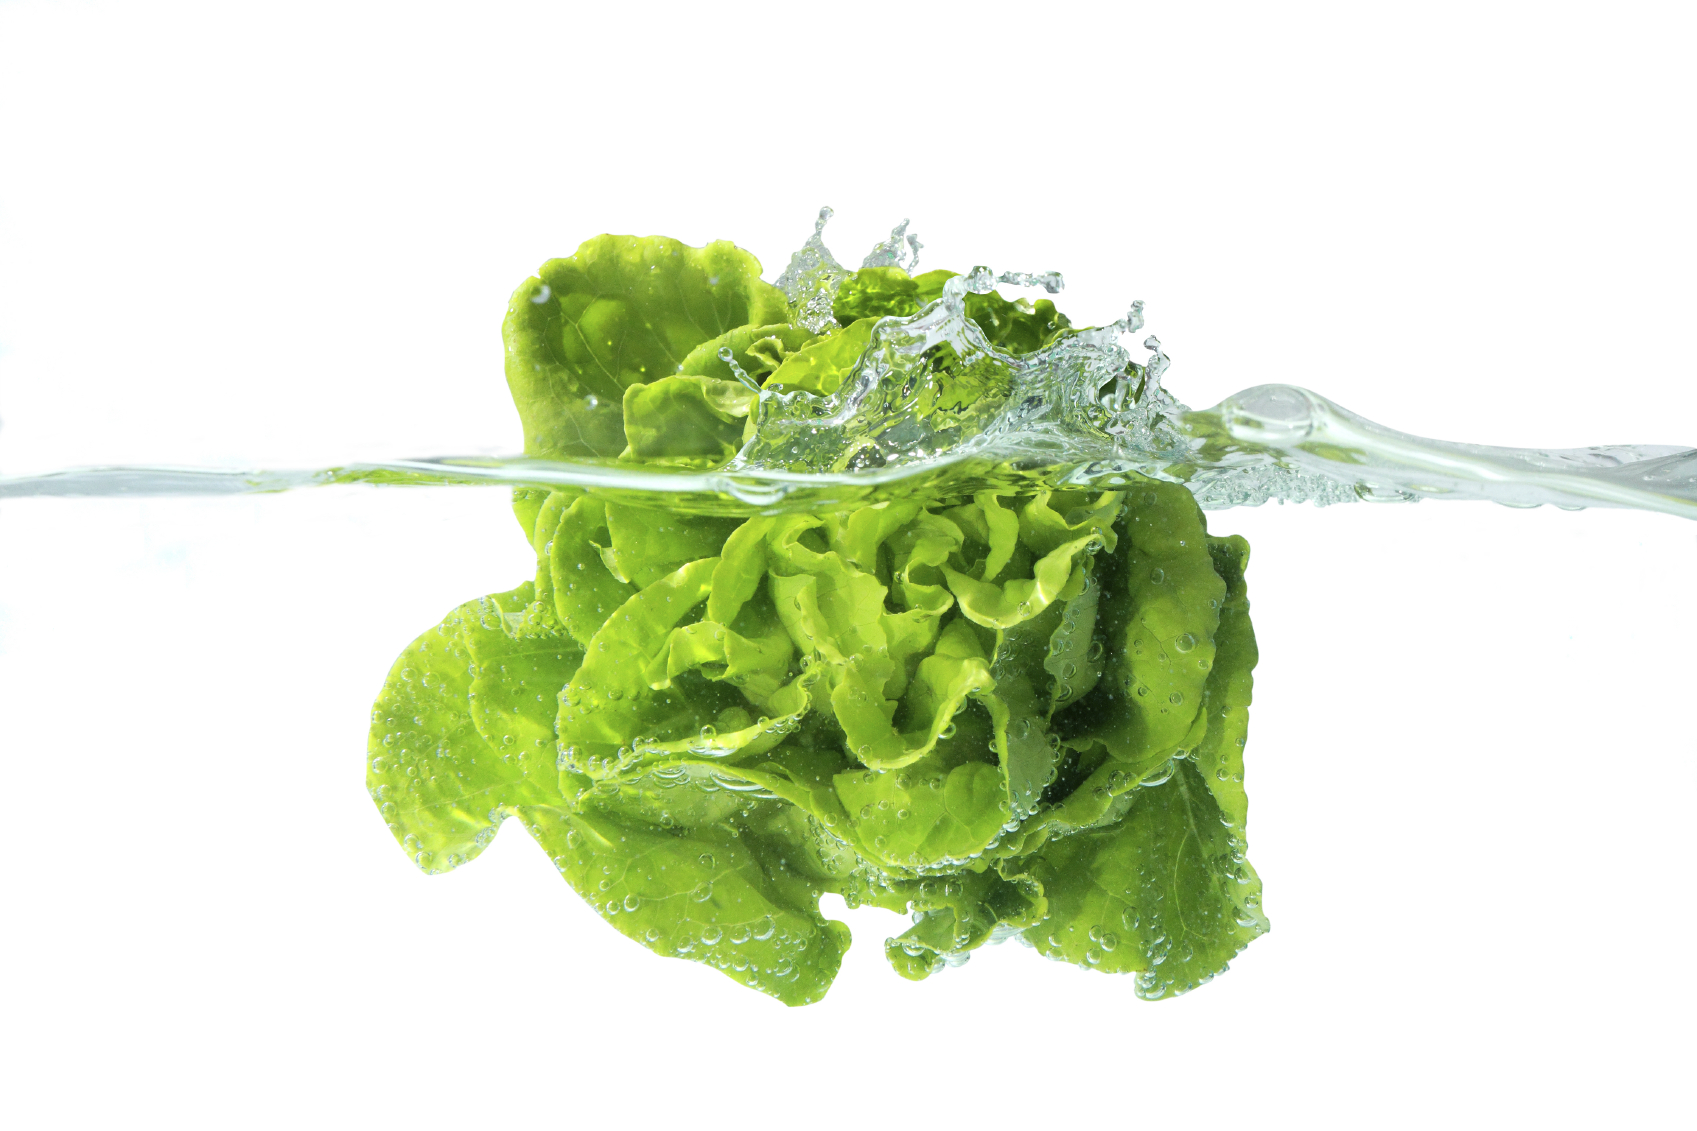 Packaged greens save time and effort. But they may be hiding a vile secret that might put your health at risk.